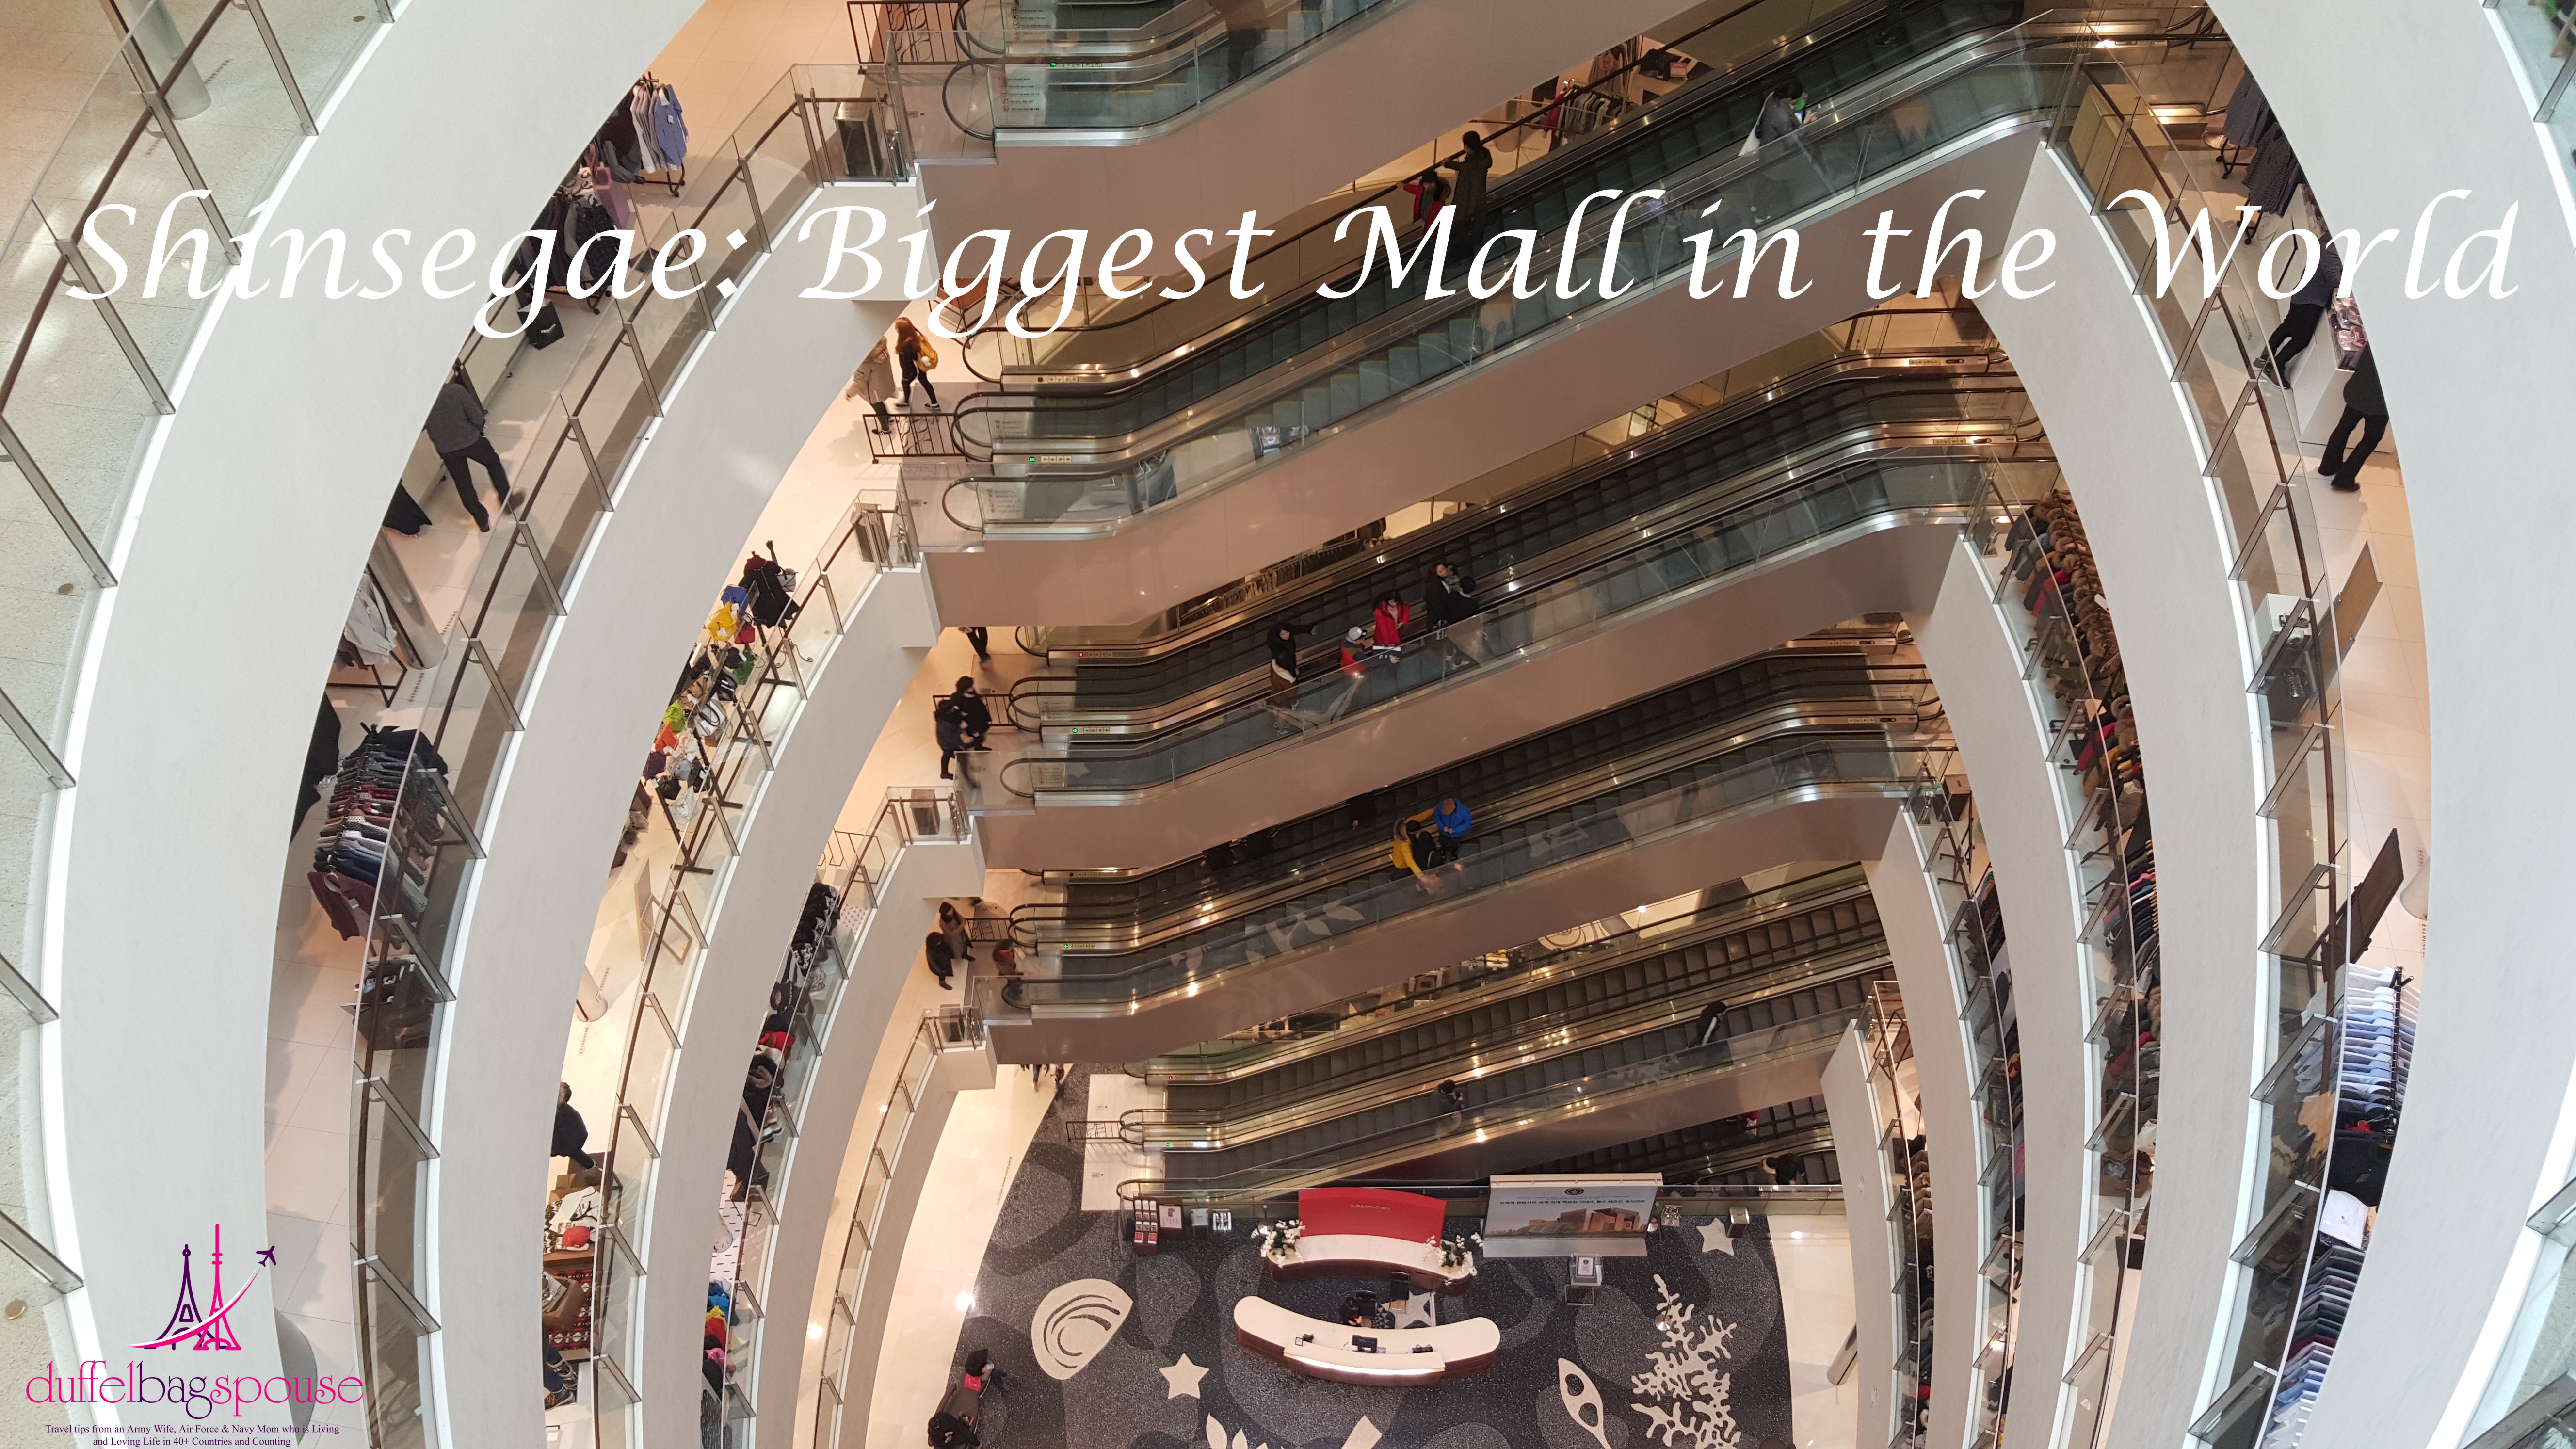 Shinsegae World S Largest Mall Duffelbagspouse Travel Tips